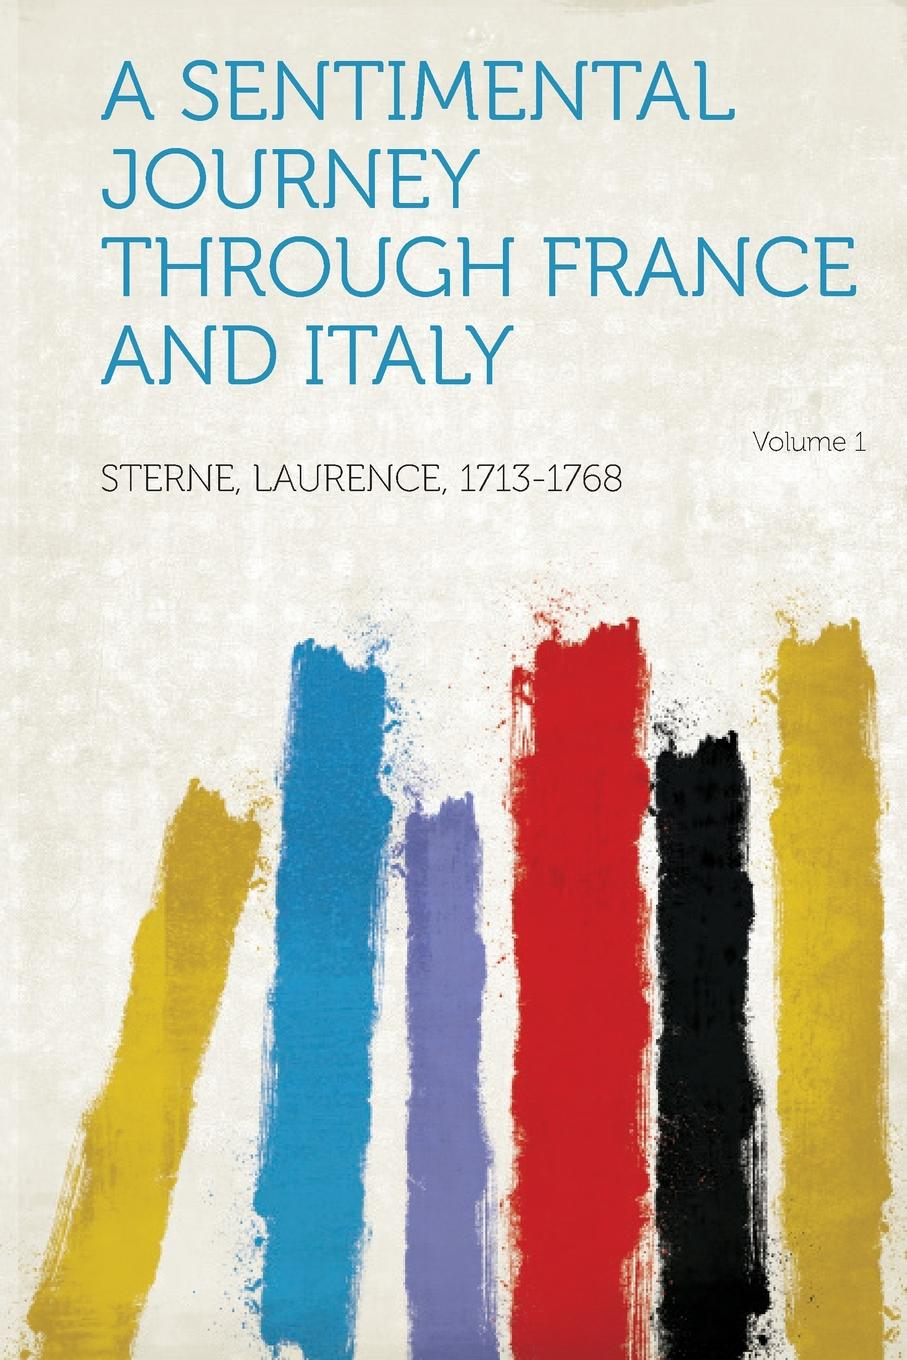 A Sentimental Journey Through France and Italy Volume 1 laurence sterne a sentimental journey through france and italy